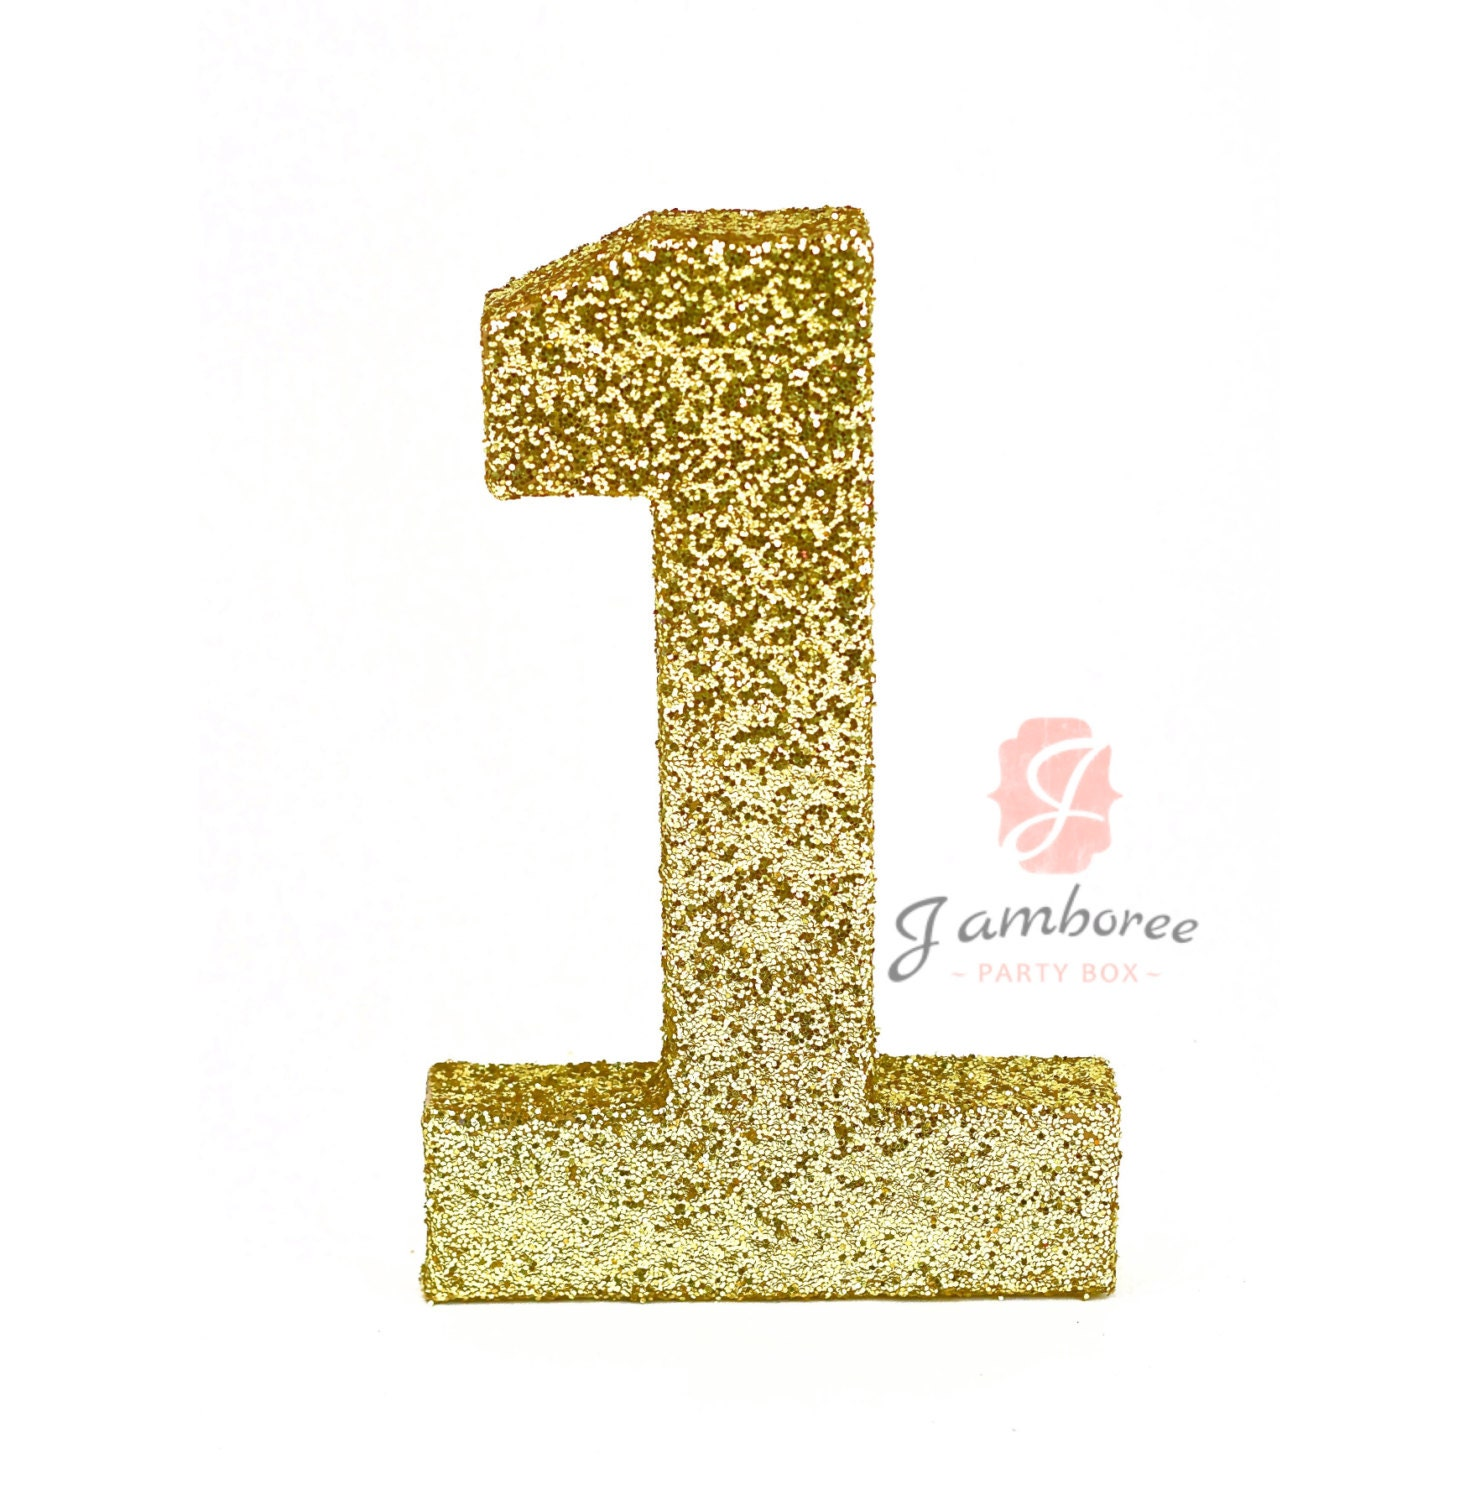 8 glitter number one paper mache number 1 gold birthday party birthday prop number birthday 1 2 3 4 5 6 birthday glitter party decor